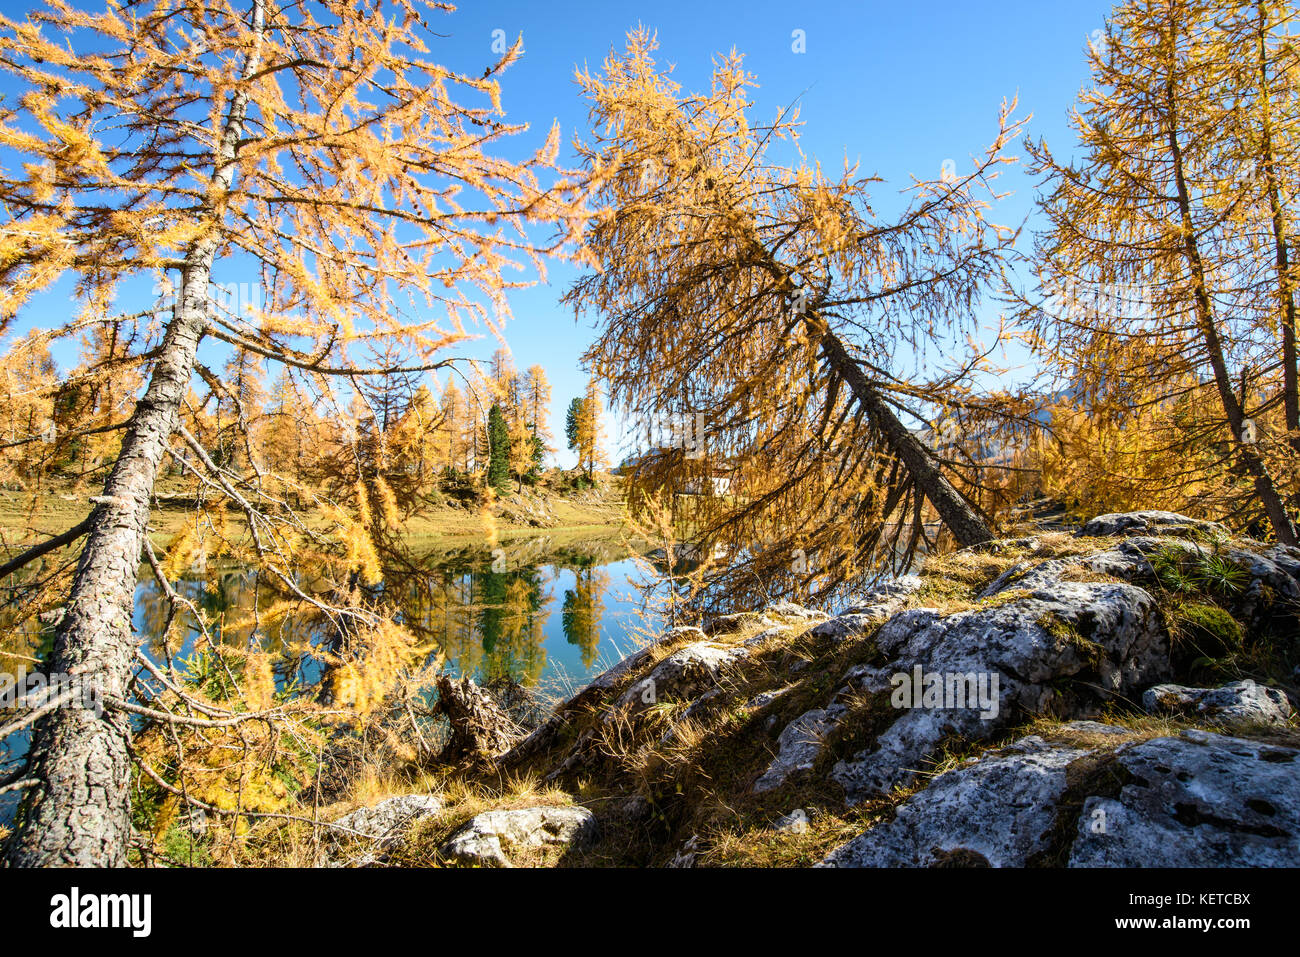 Larch Forest In Autumn View Stock Photos & Larch Forest In ...